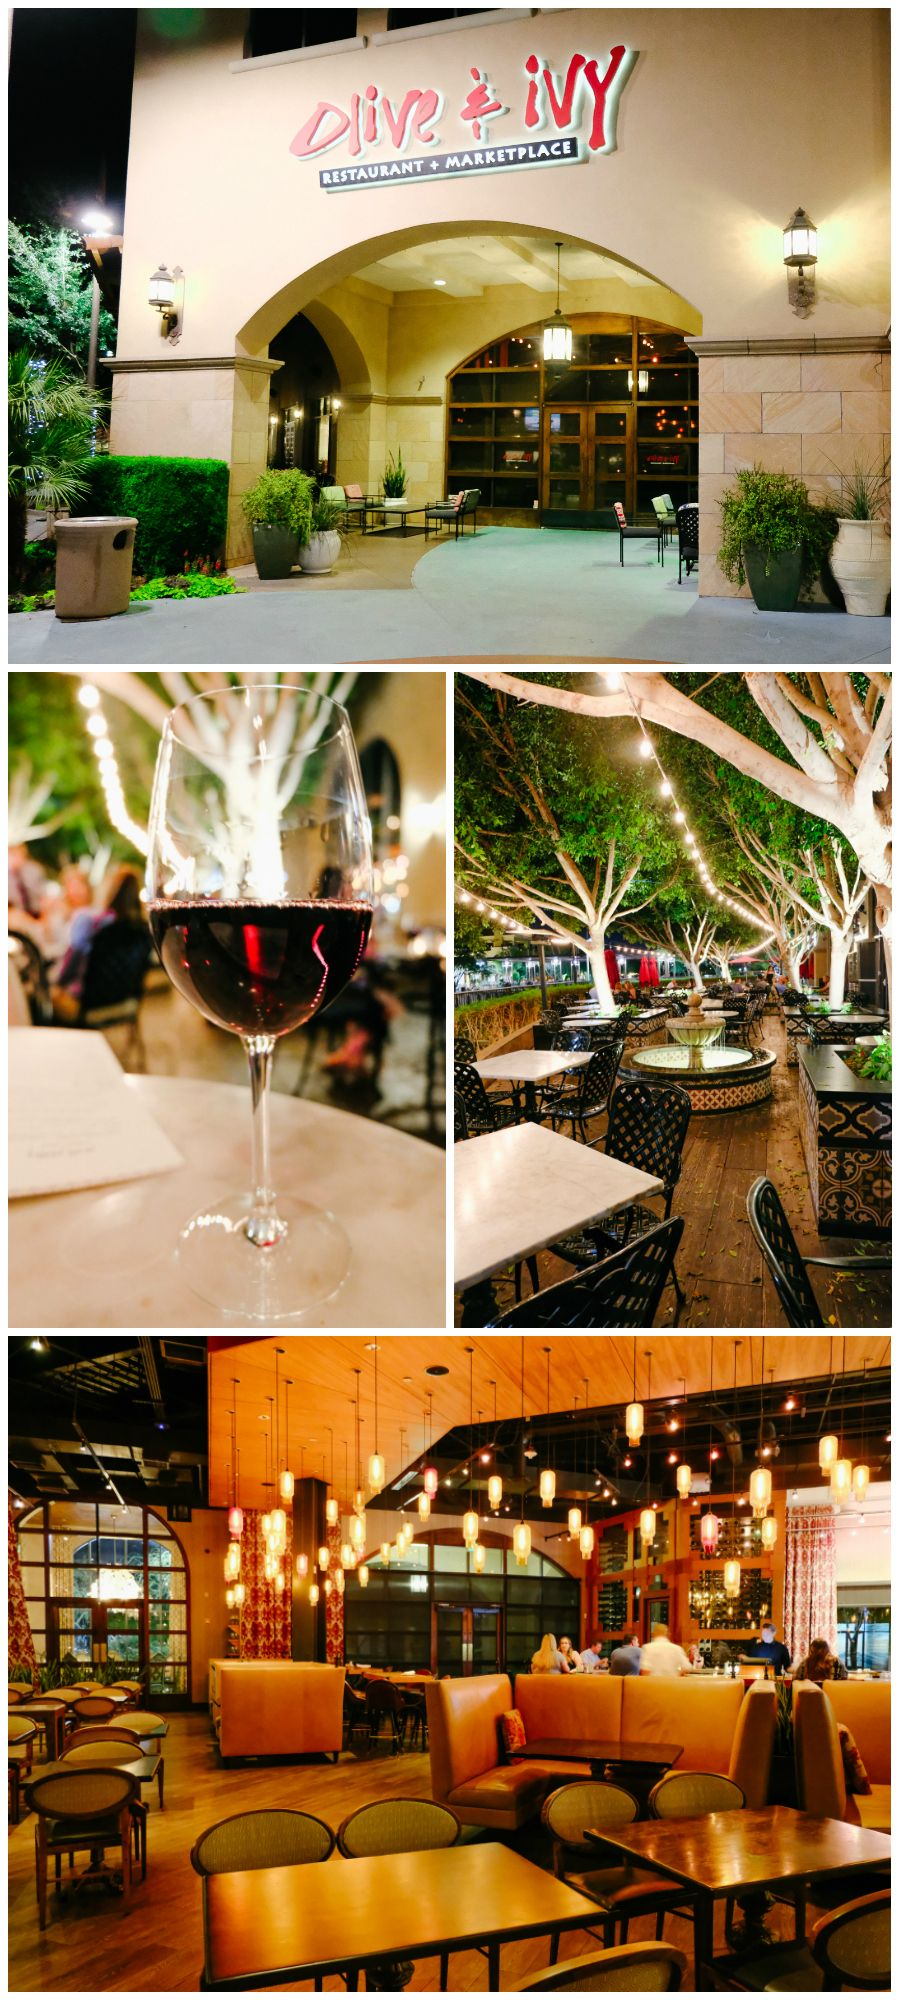 Places To Eat In Scottsdale Arizona Olive And Ivy Deliciousfood Travel Food Restaurants